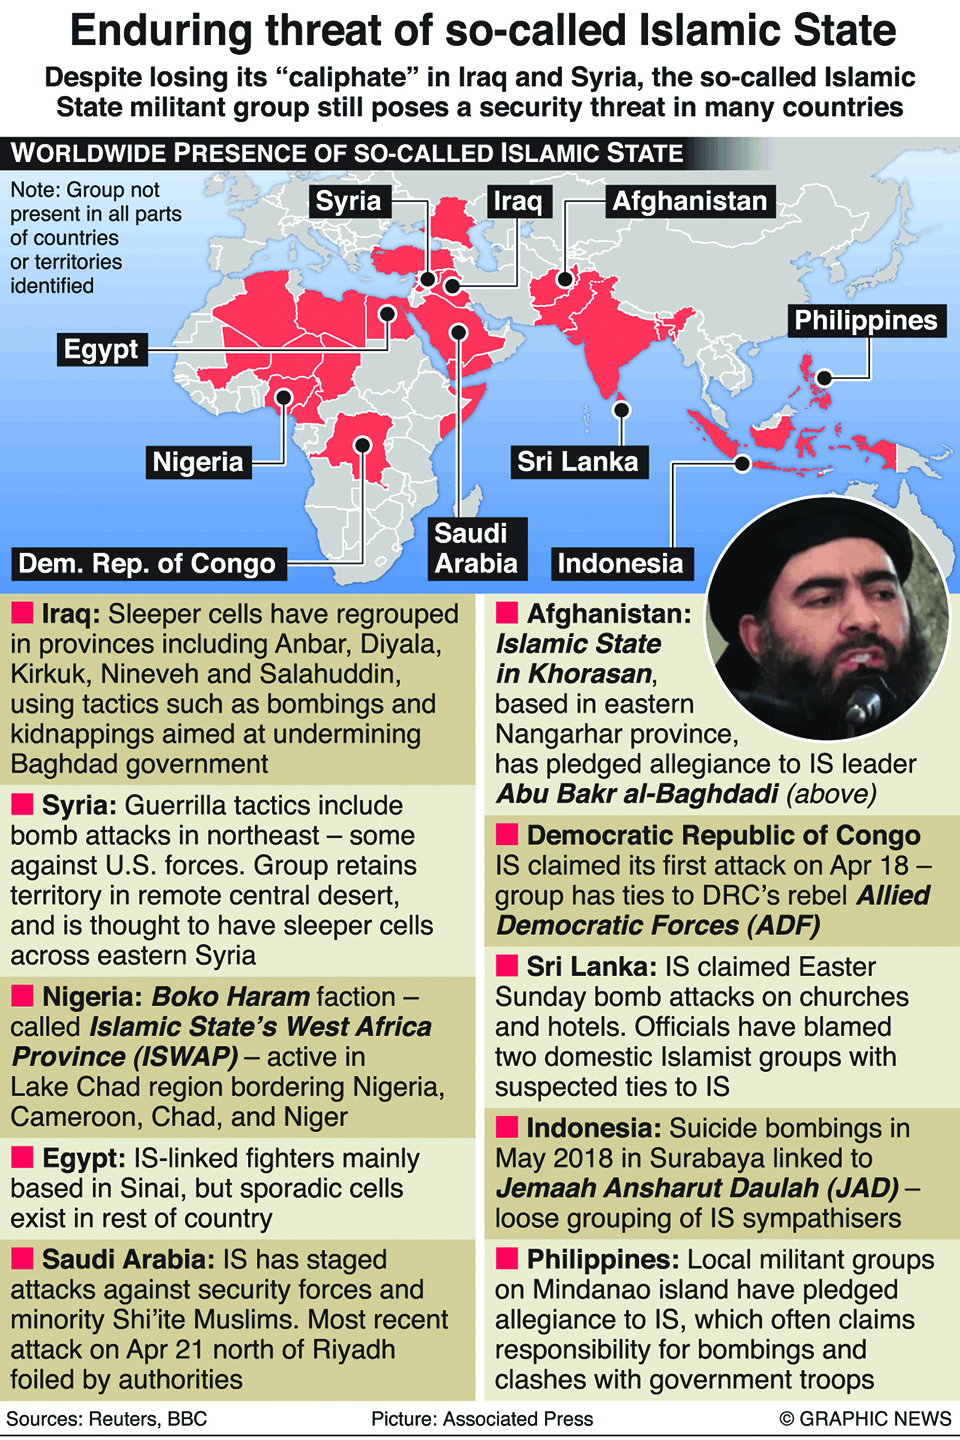 Infographics: So-called Islamic State still a threat in many countries